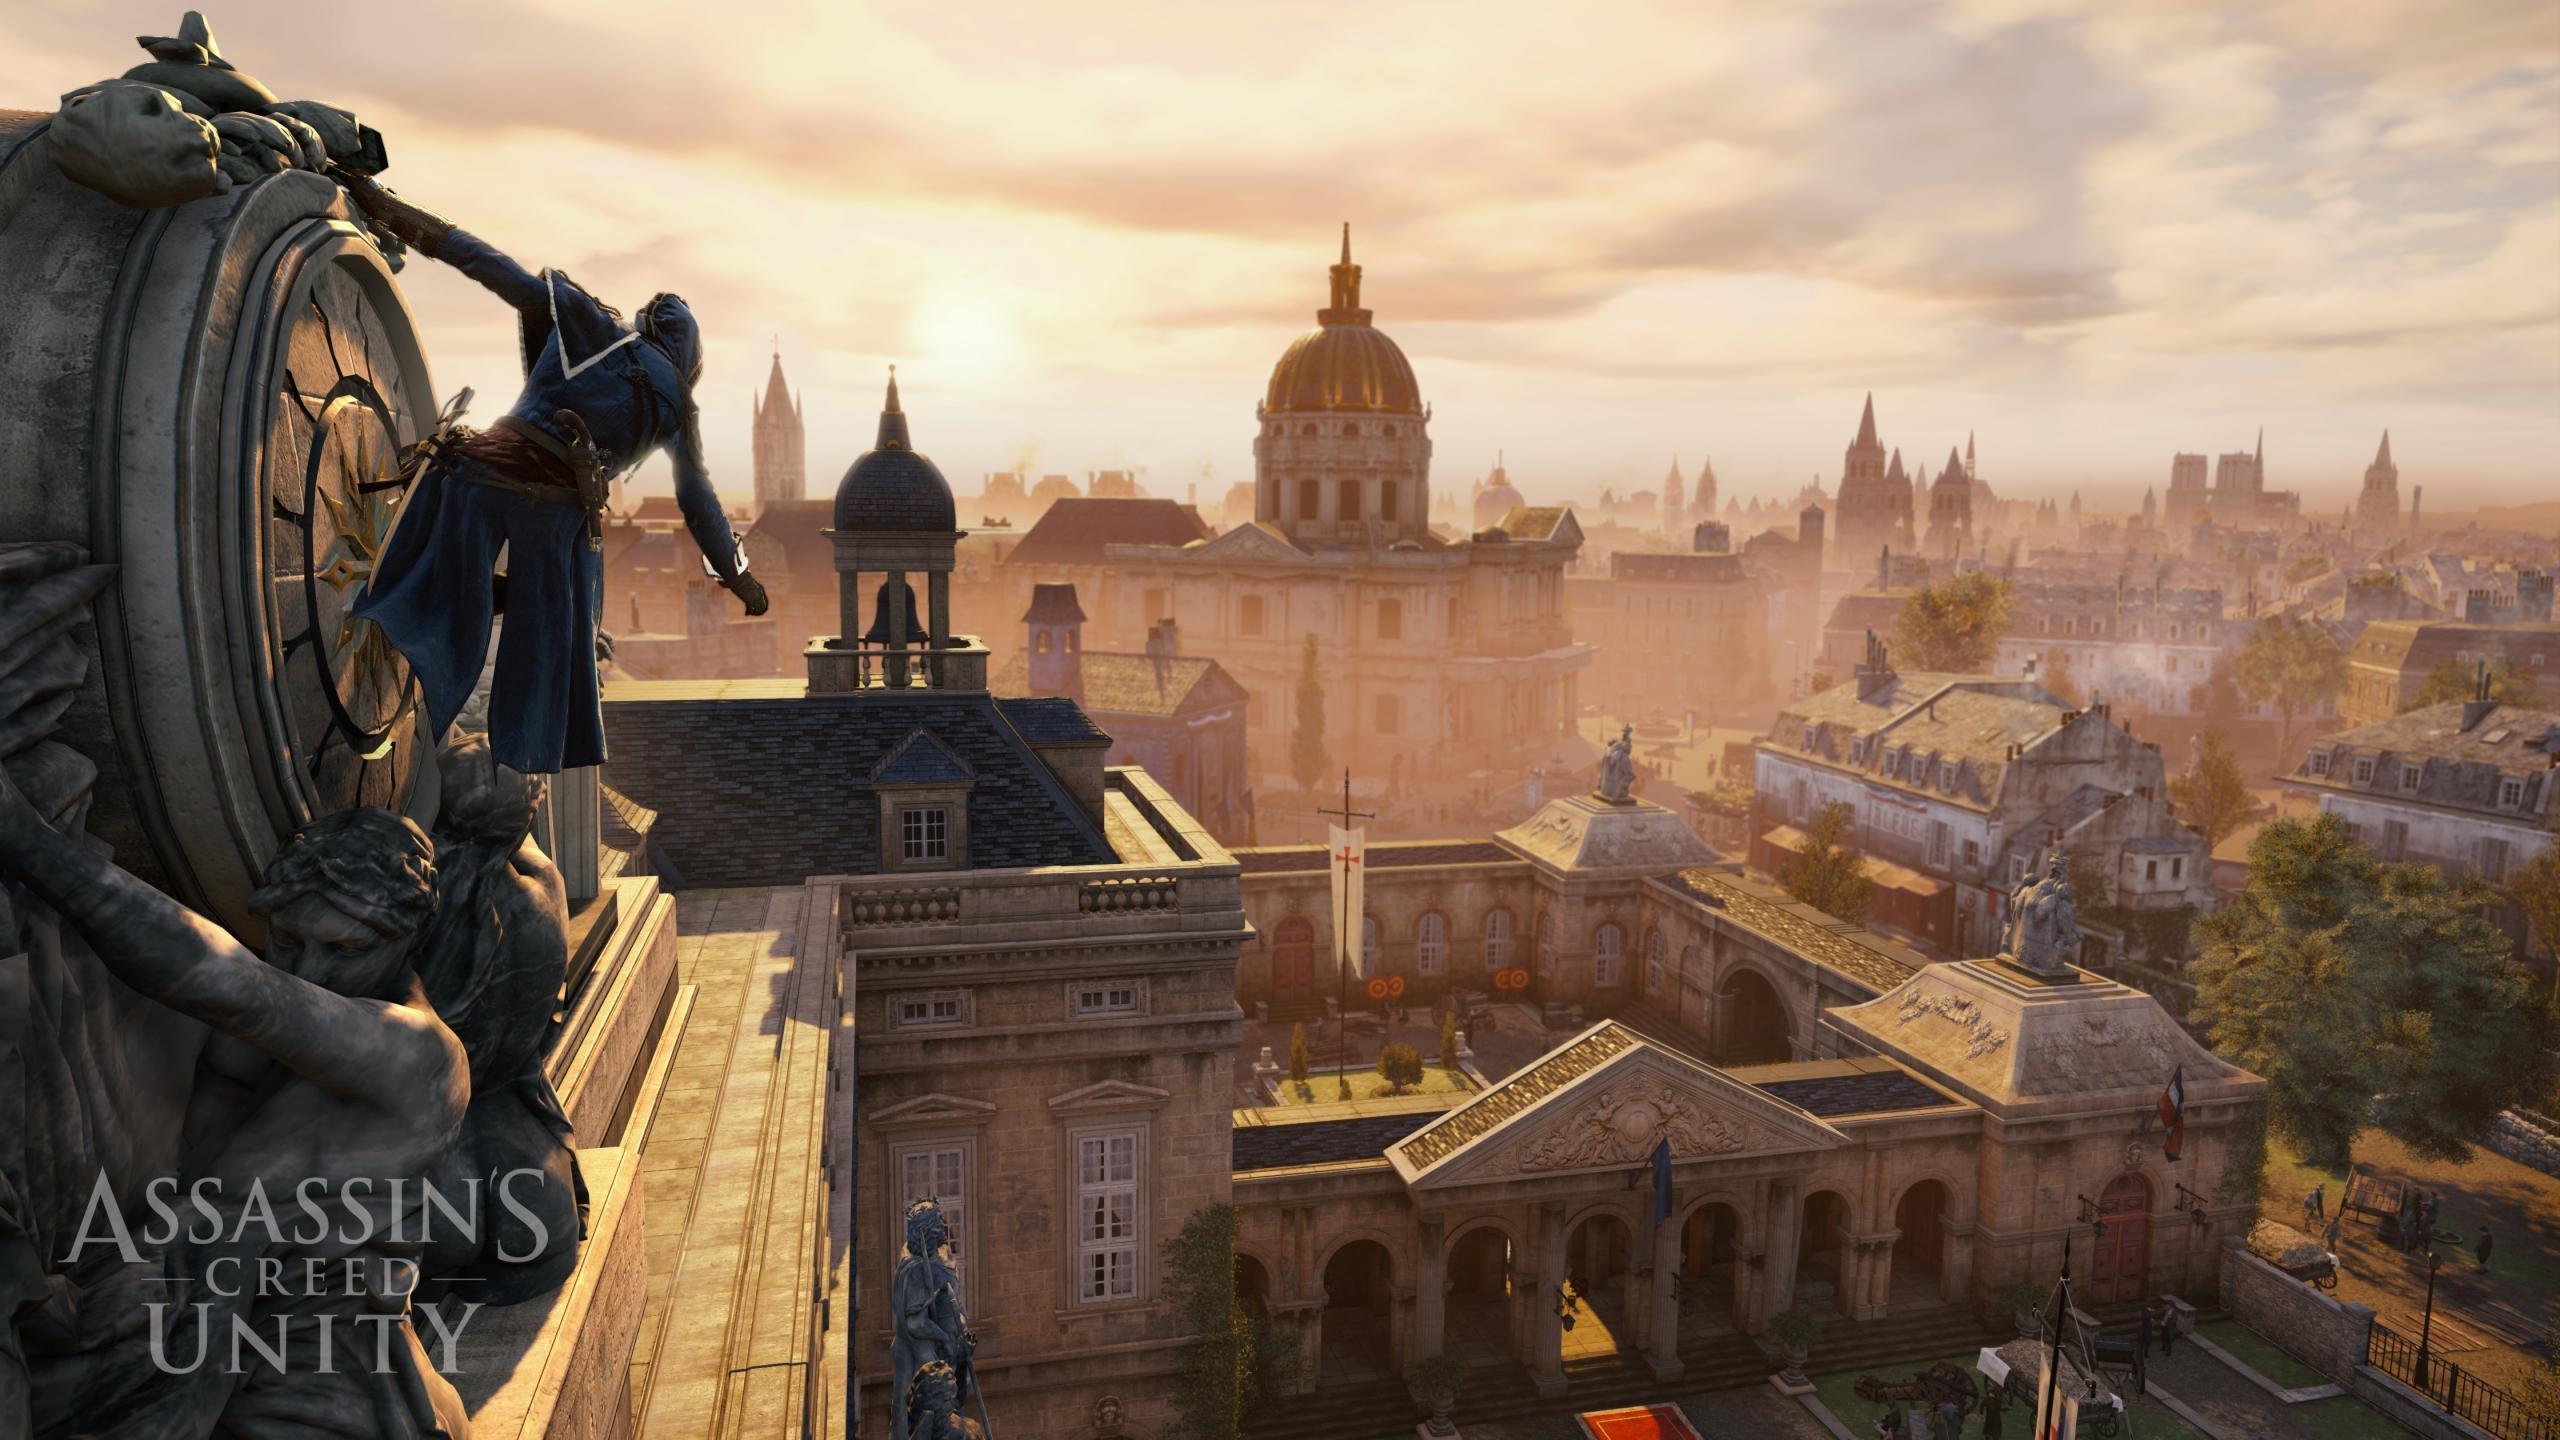 Best Assassin S Creed Unity Wallpaper Id 229470 For High